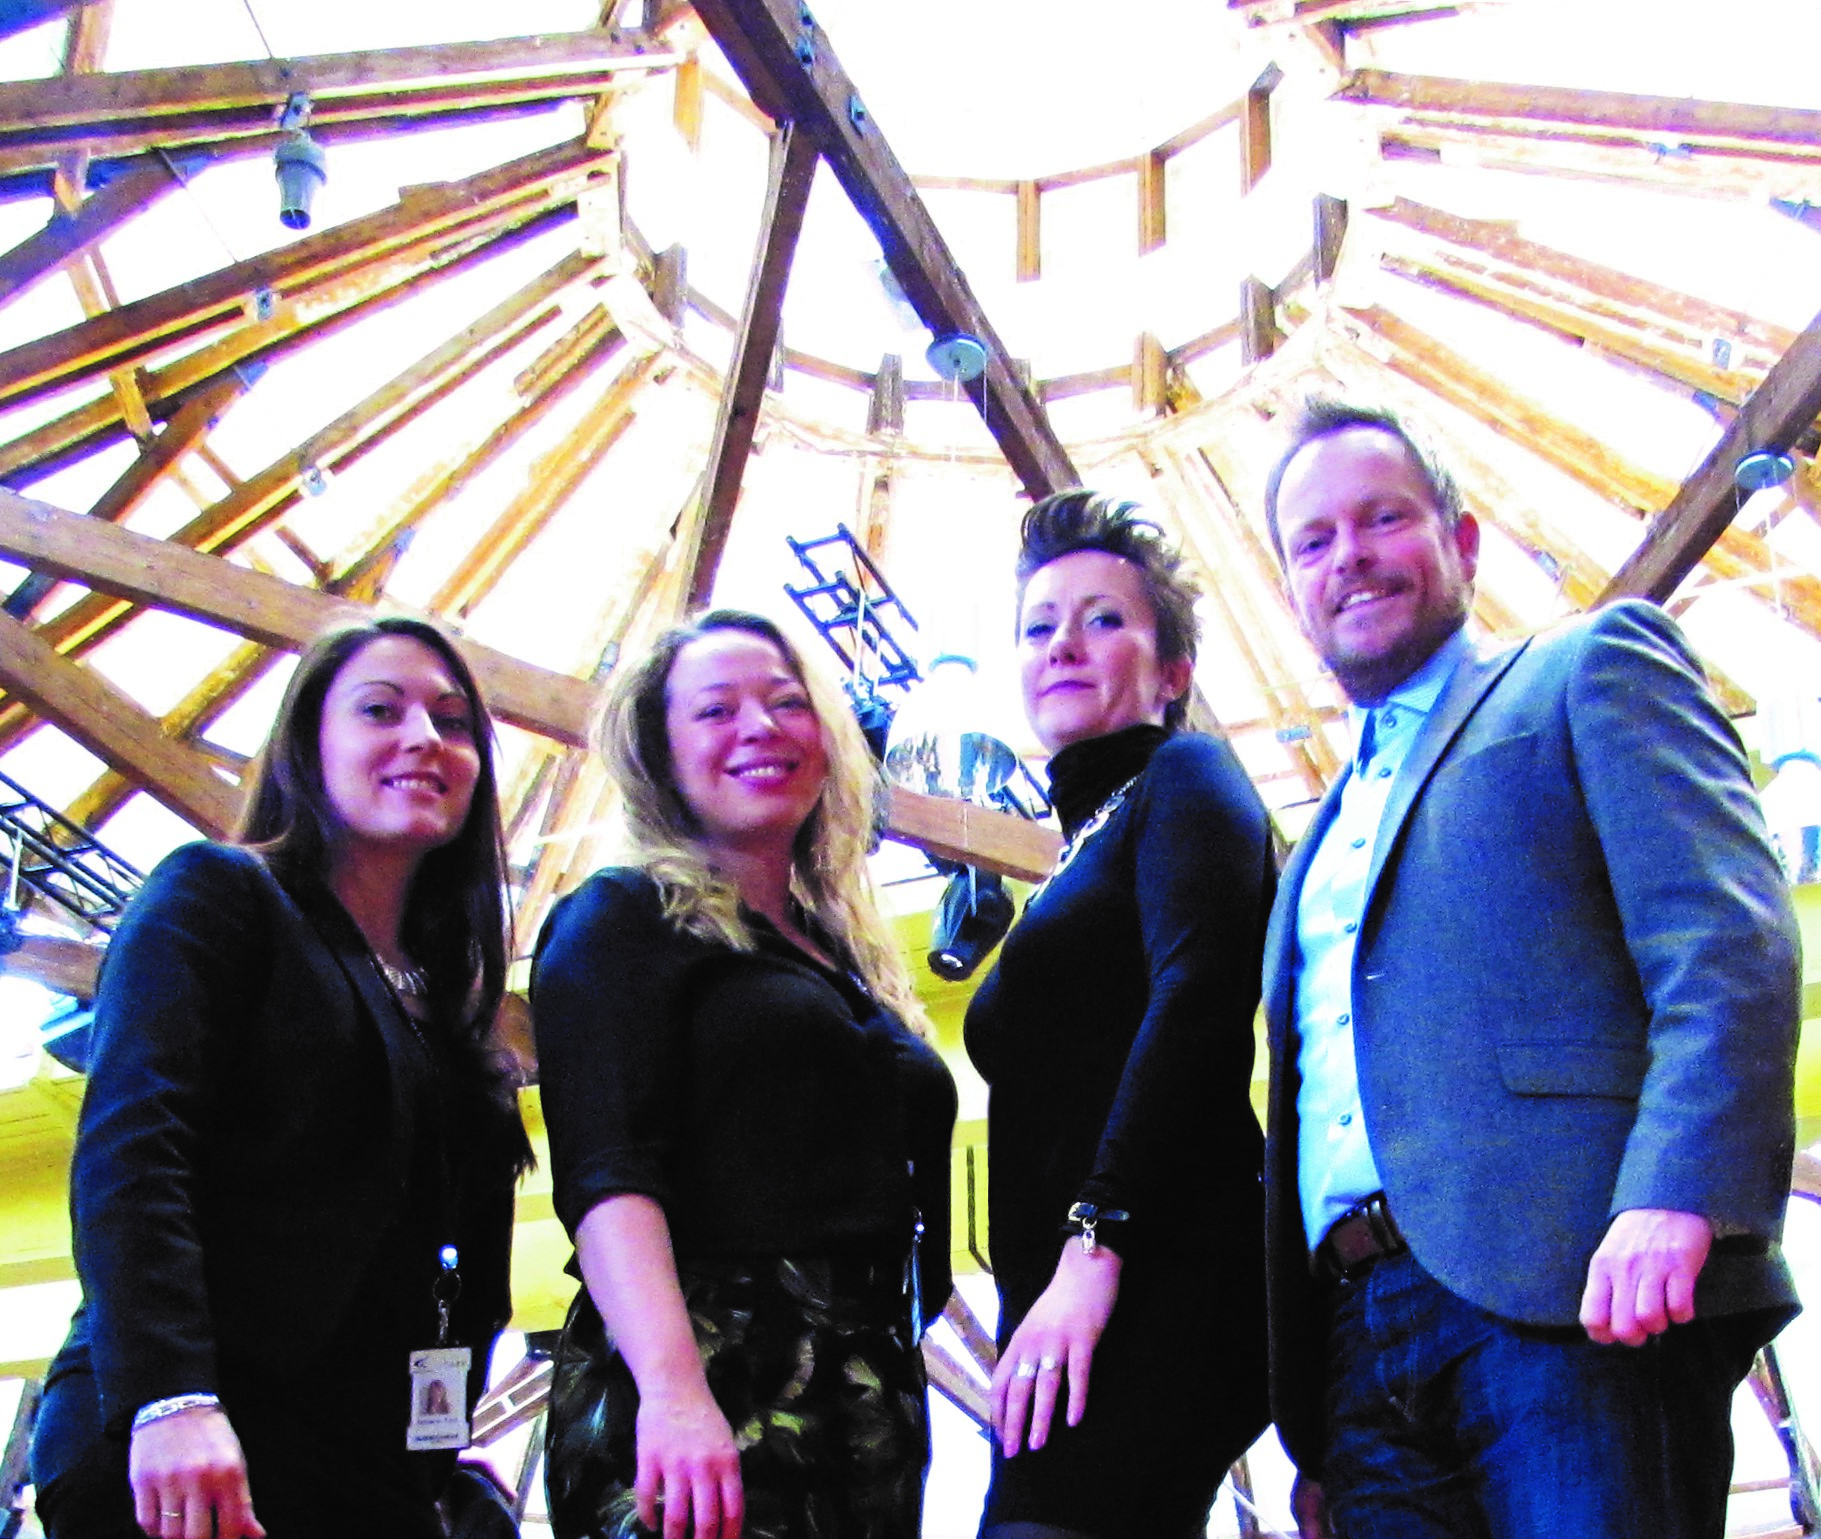 From left to right: Rebekah Ford and Laura Wilkinsonfrom Roundhouse Events with DE22 Creative Directors Gemma Lovett and Martin Griffiths.